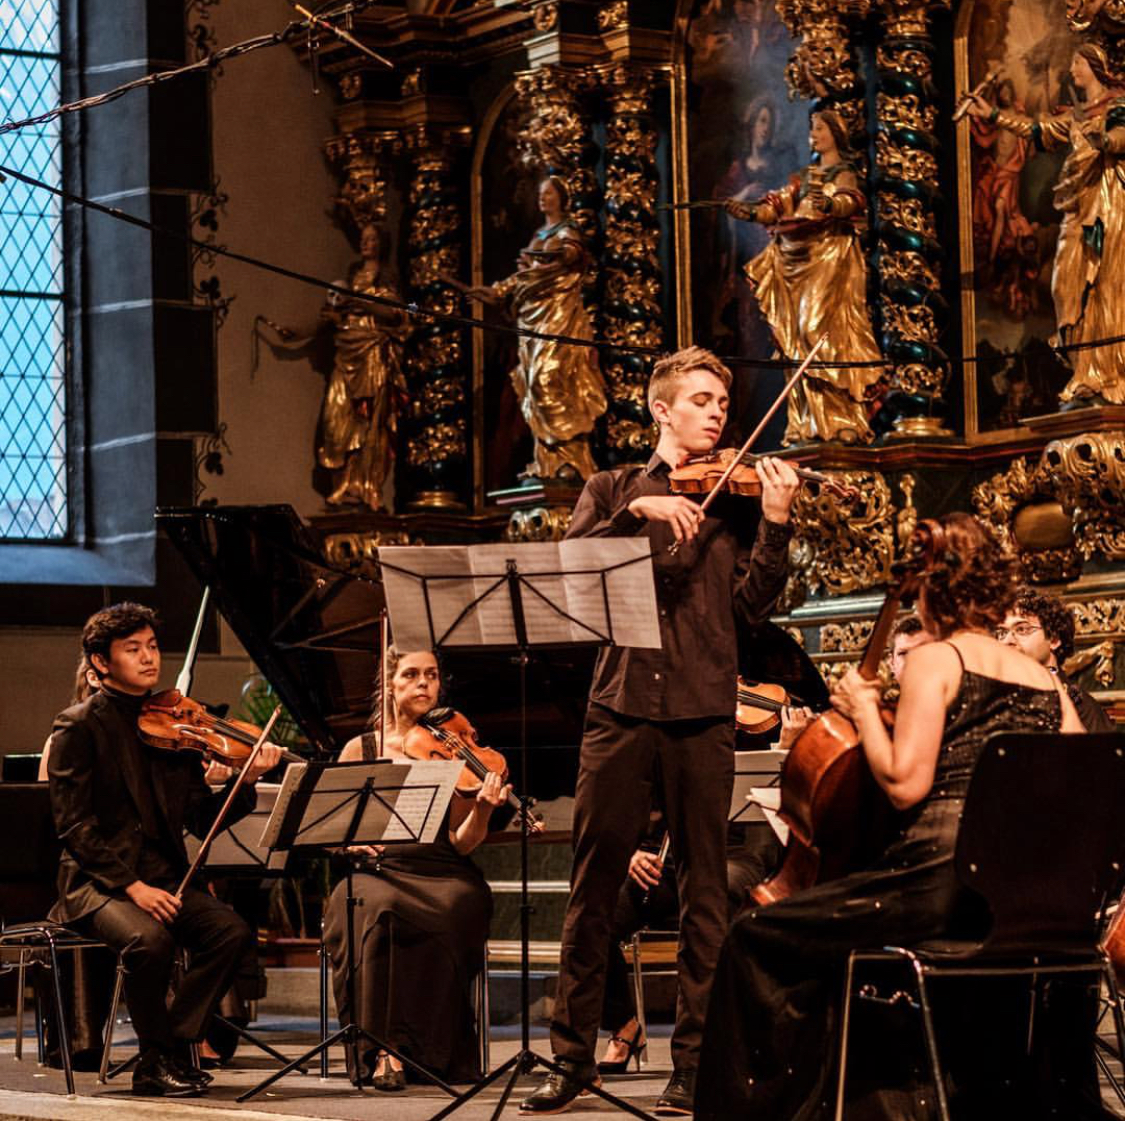 Performing Vivaldi Four Seasons with the Ernen Festival Orchestra